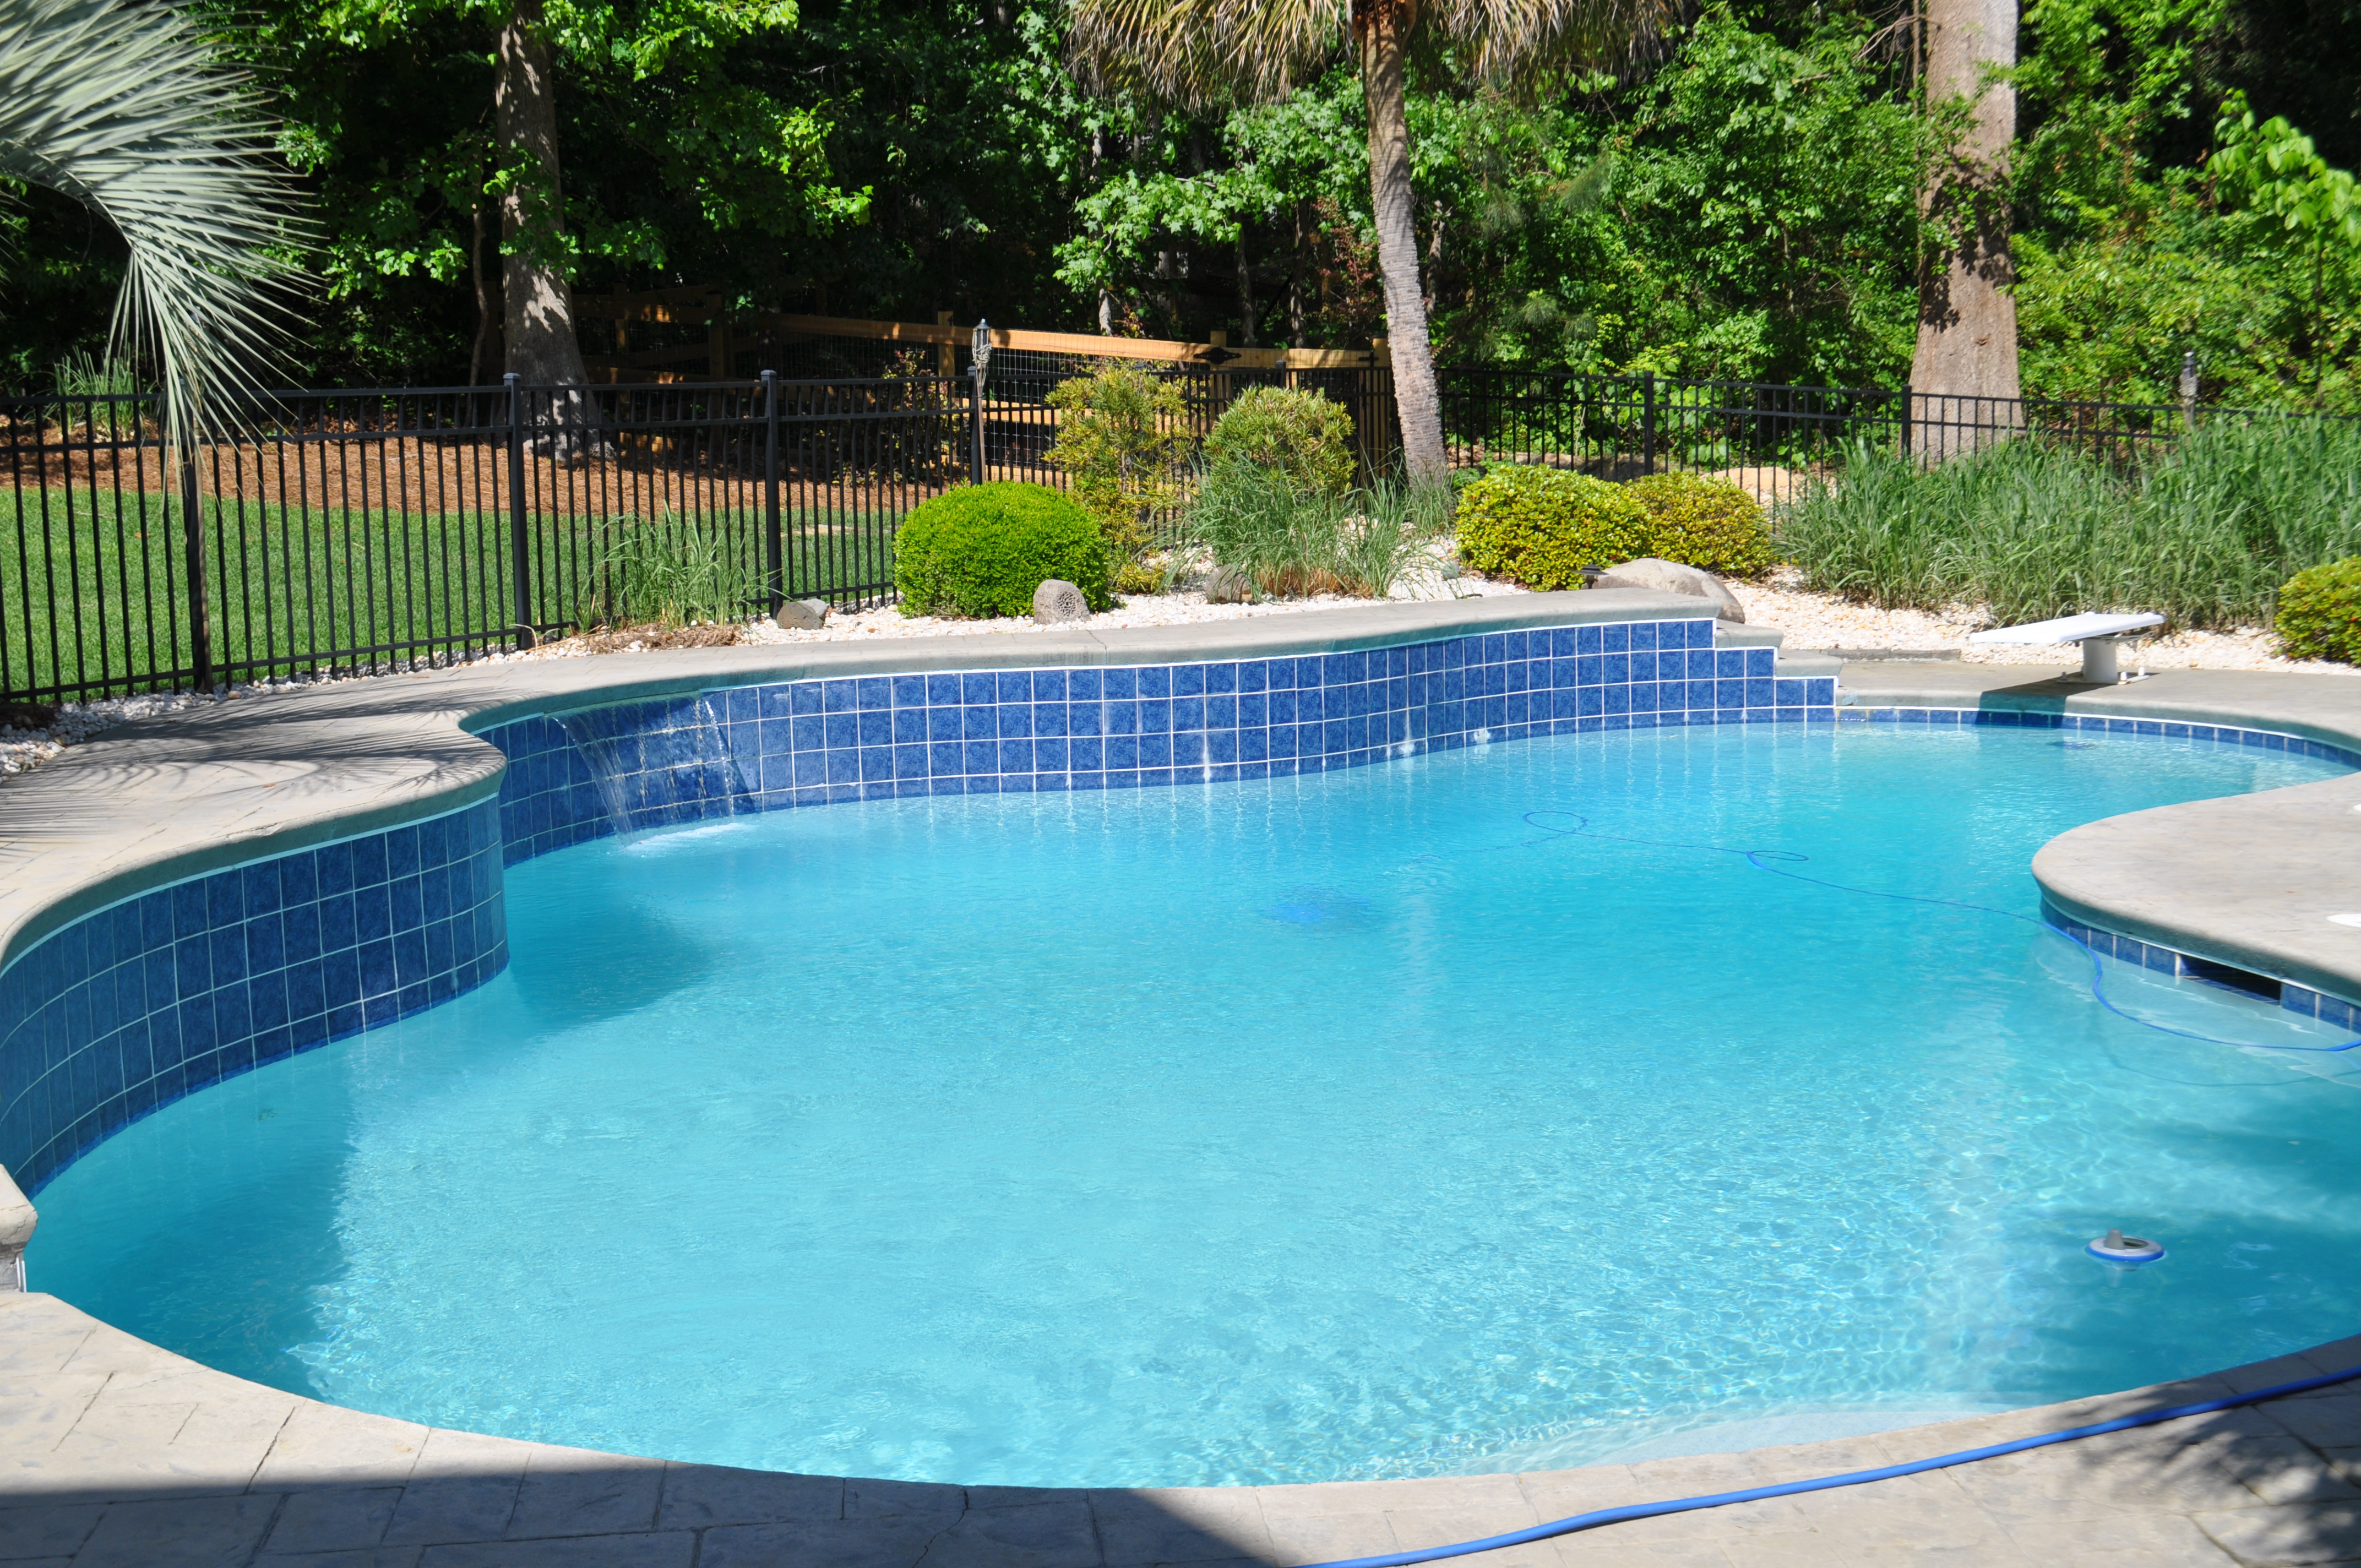 Waterproof Pool Tile Grout : Grout efflorescence in several areas